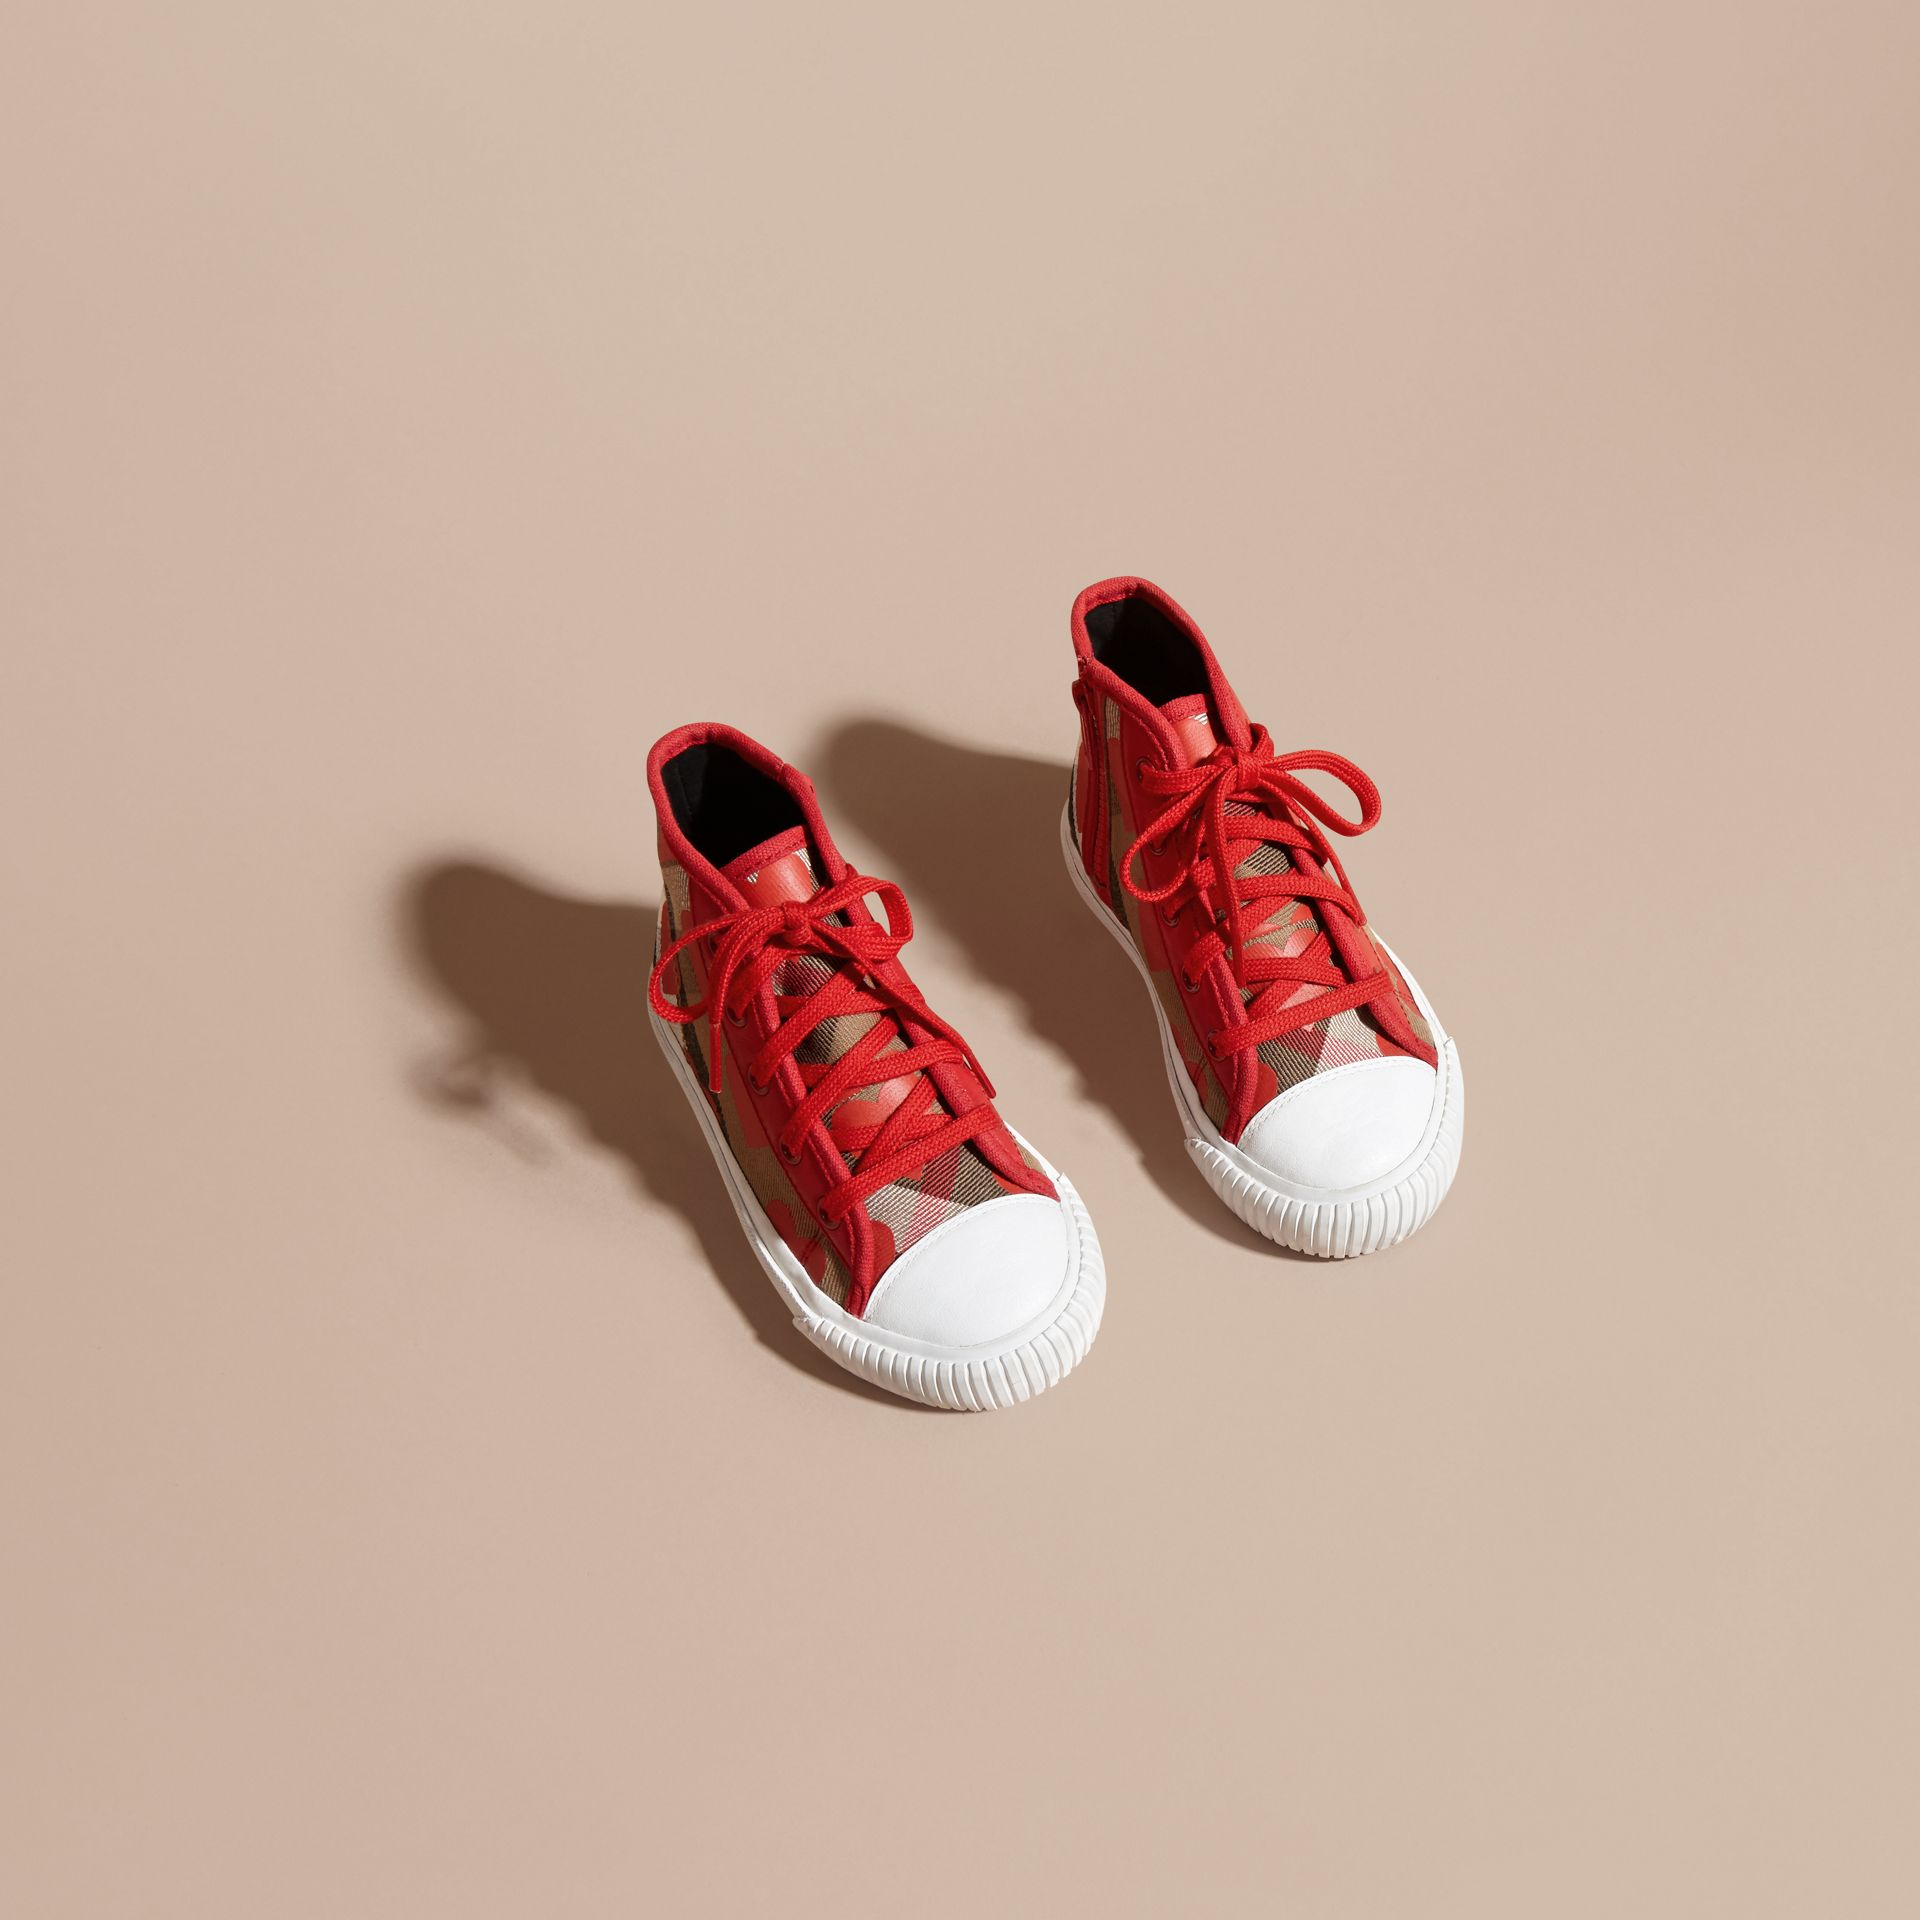 Military red Leather Trim Dot Print Check High-top Trainers Military Red - gallery image 3